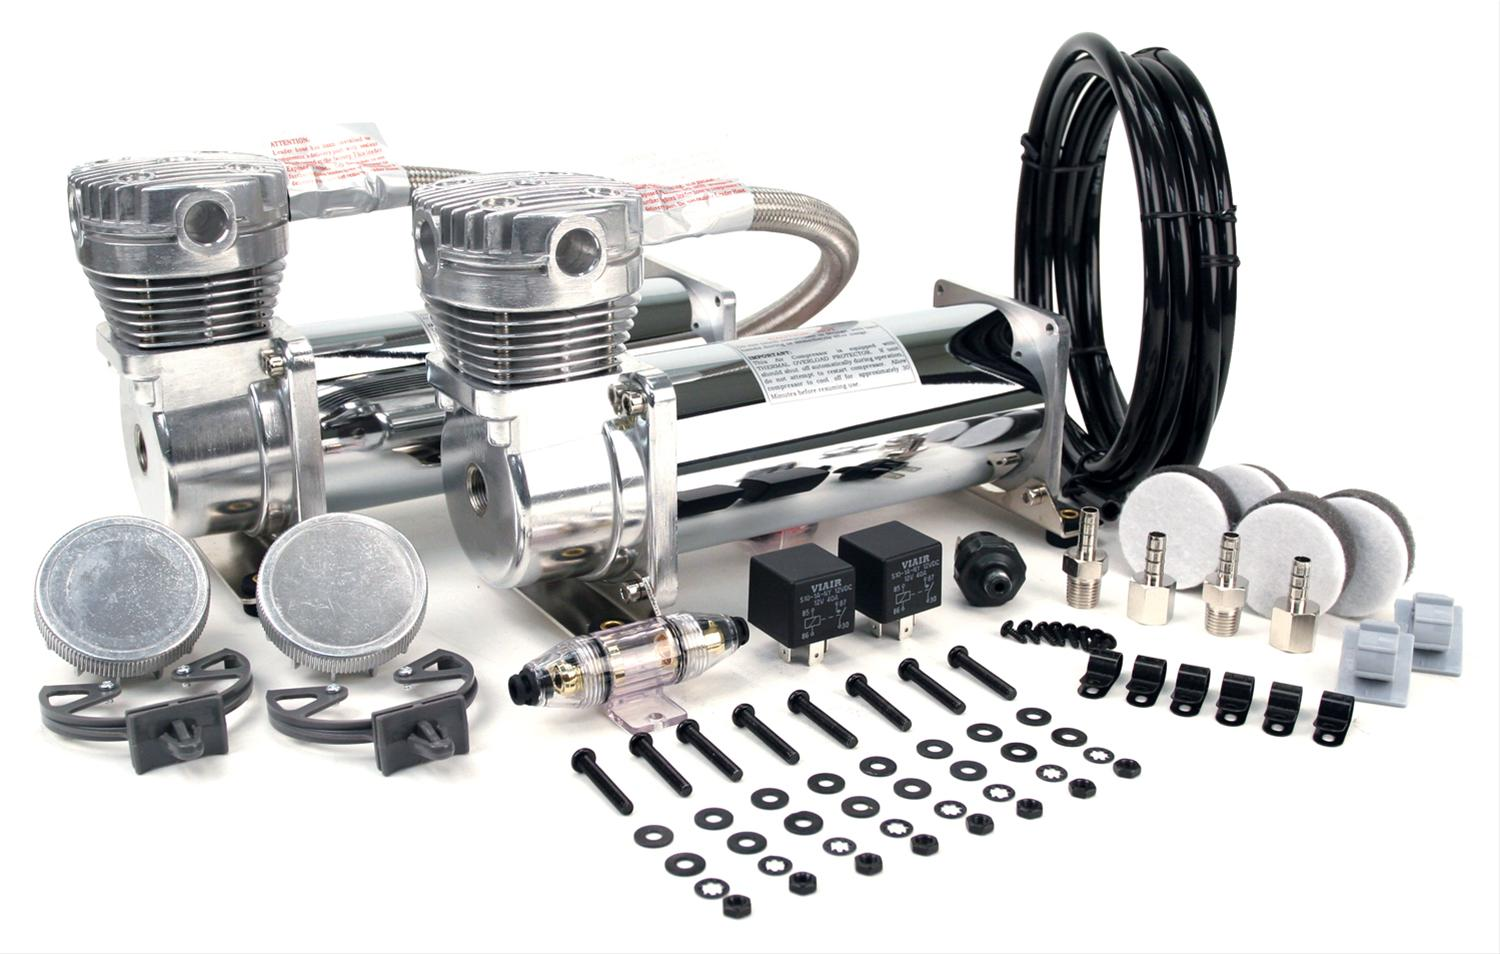 wiring kit for two amps